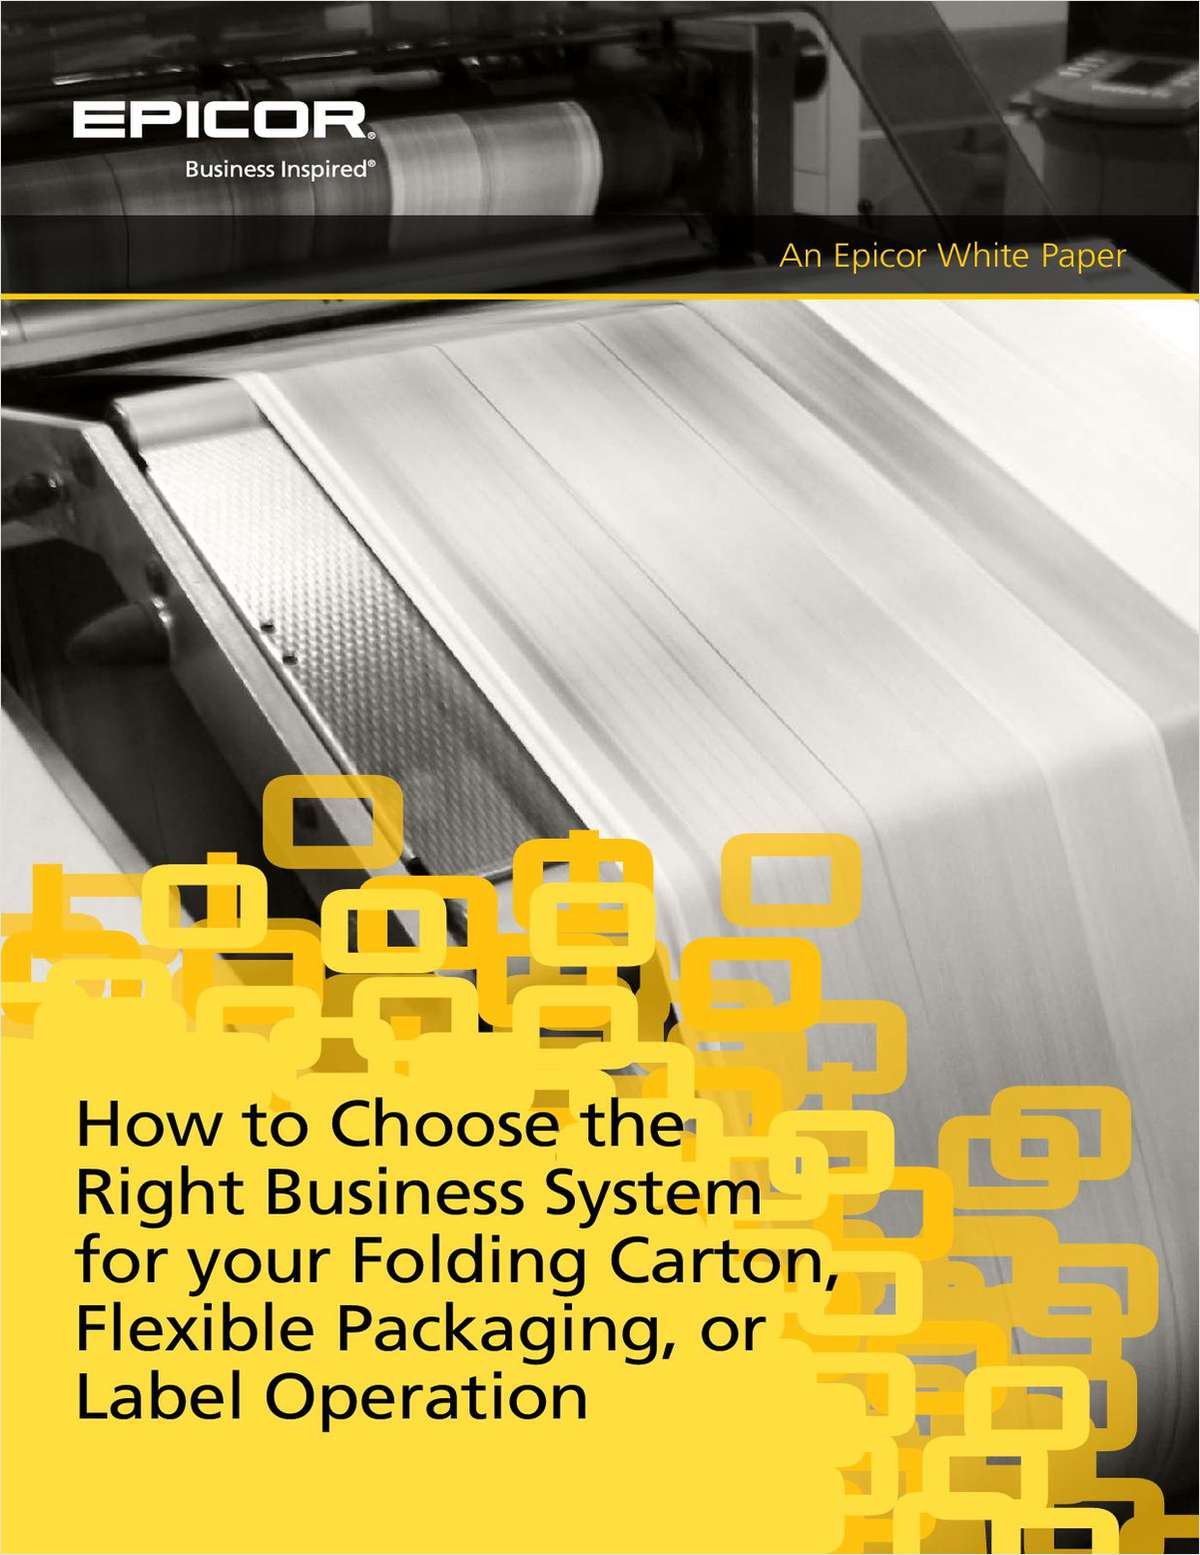 How to Choose the Right Business System for Your Folding Carton, Flexible Packaging, Or Label Operation